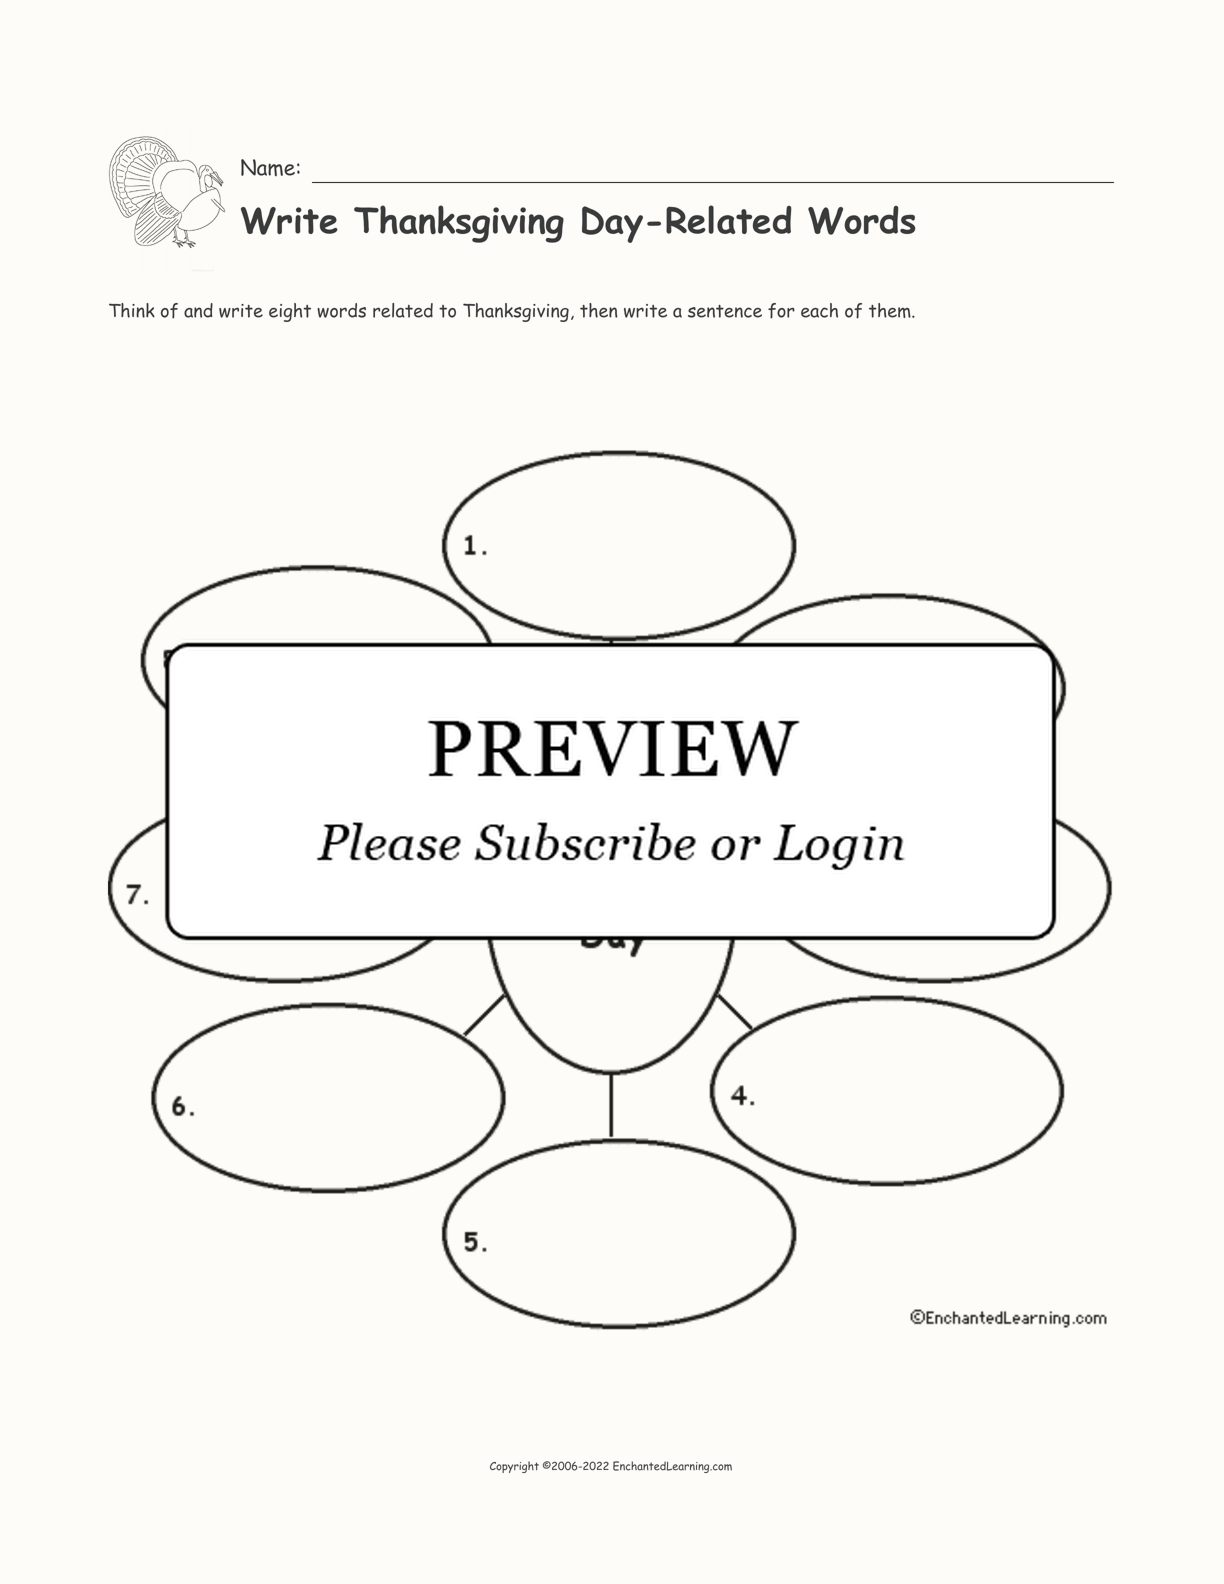 Write Thanksgiving Day-Related Words interactive printout page 1